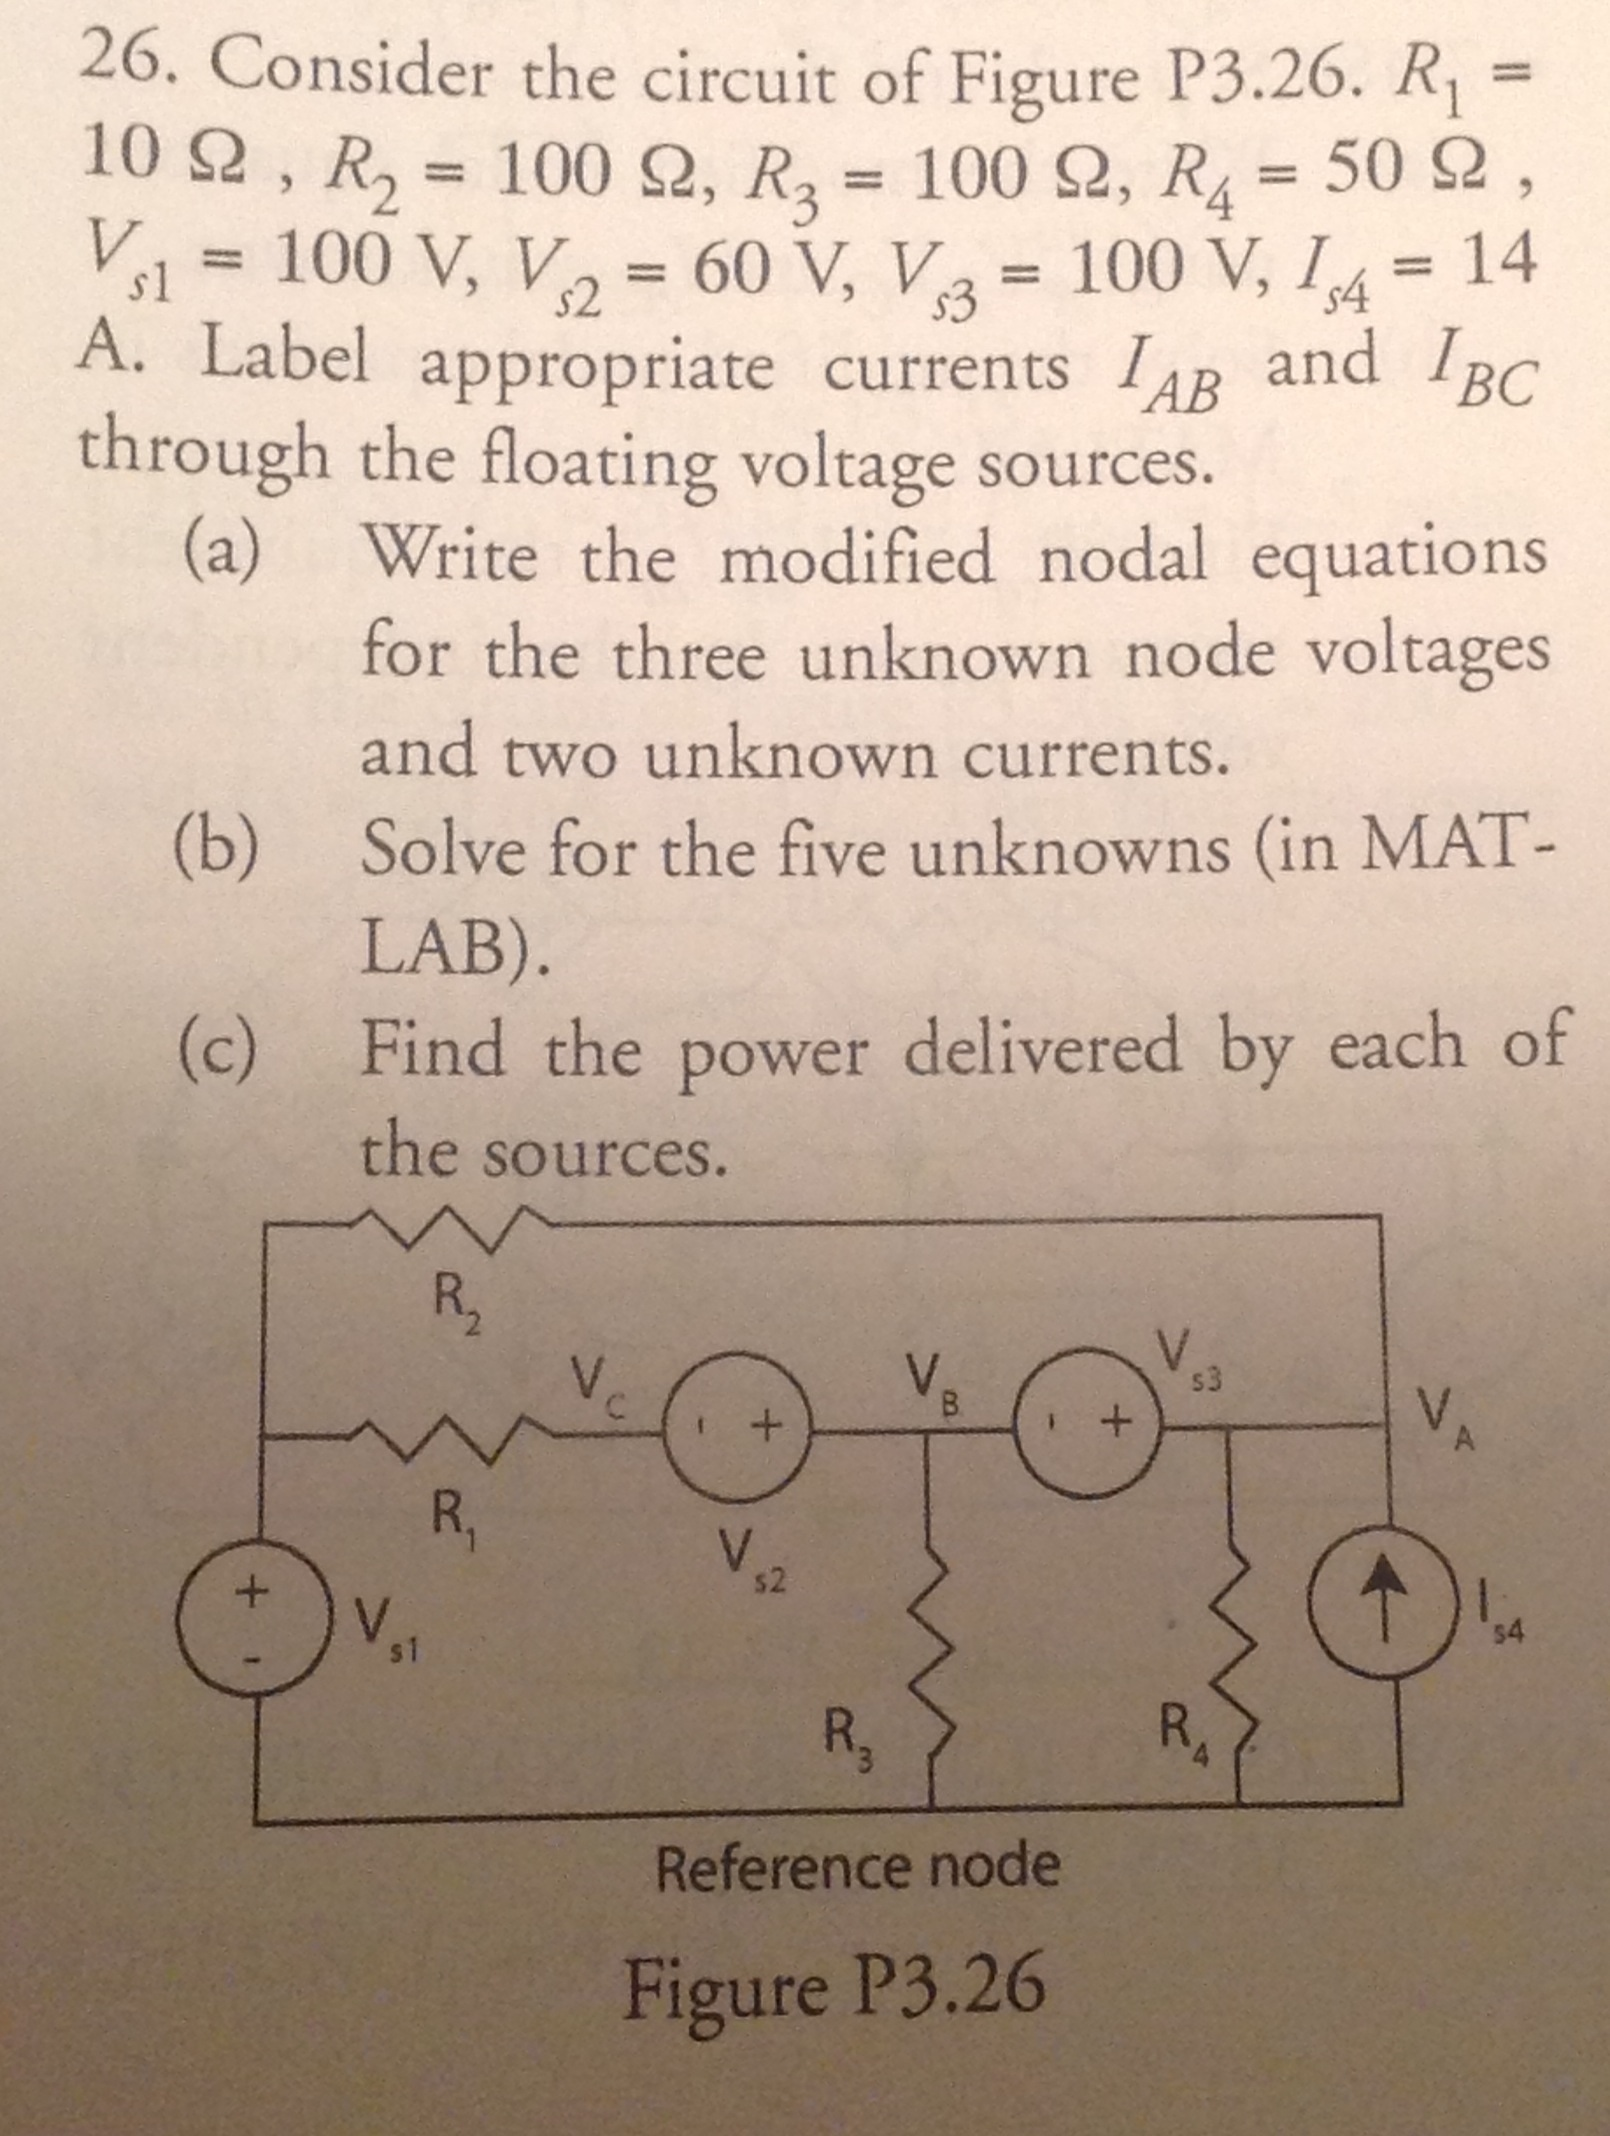 Consider the circuit of Figure P3. 26. R1 = 10 Ohm